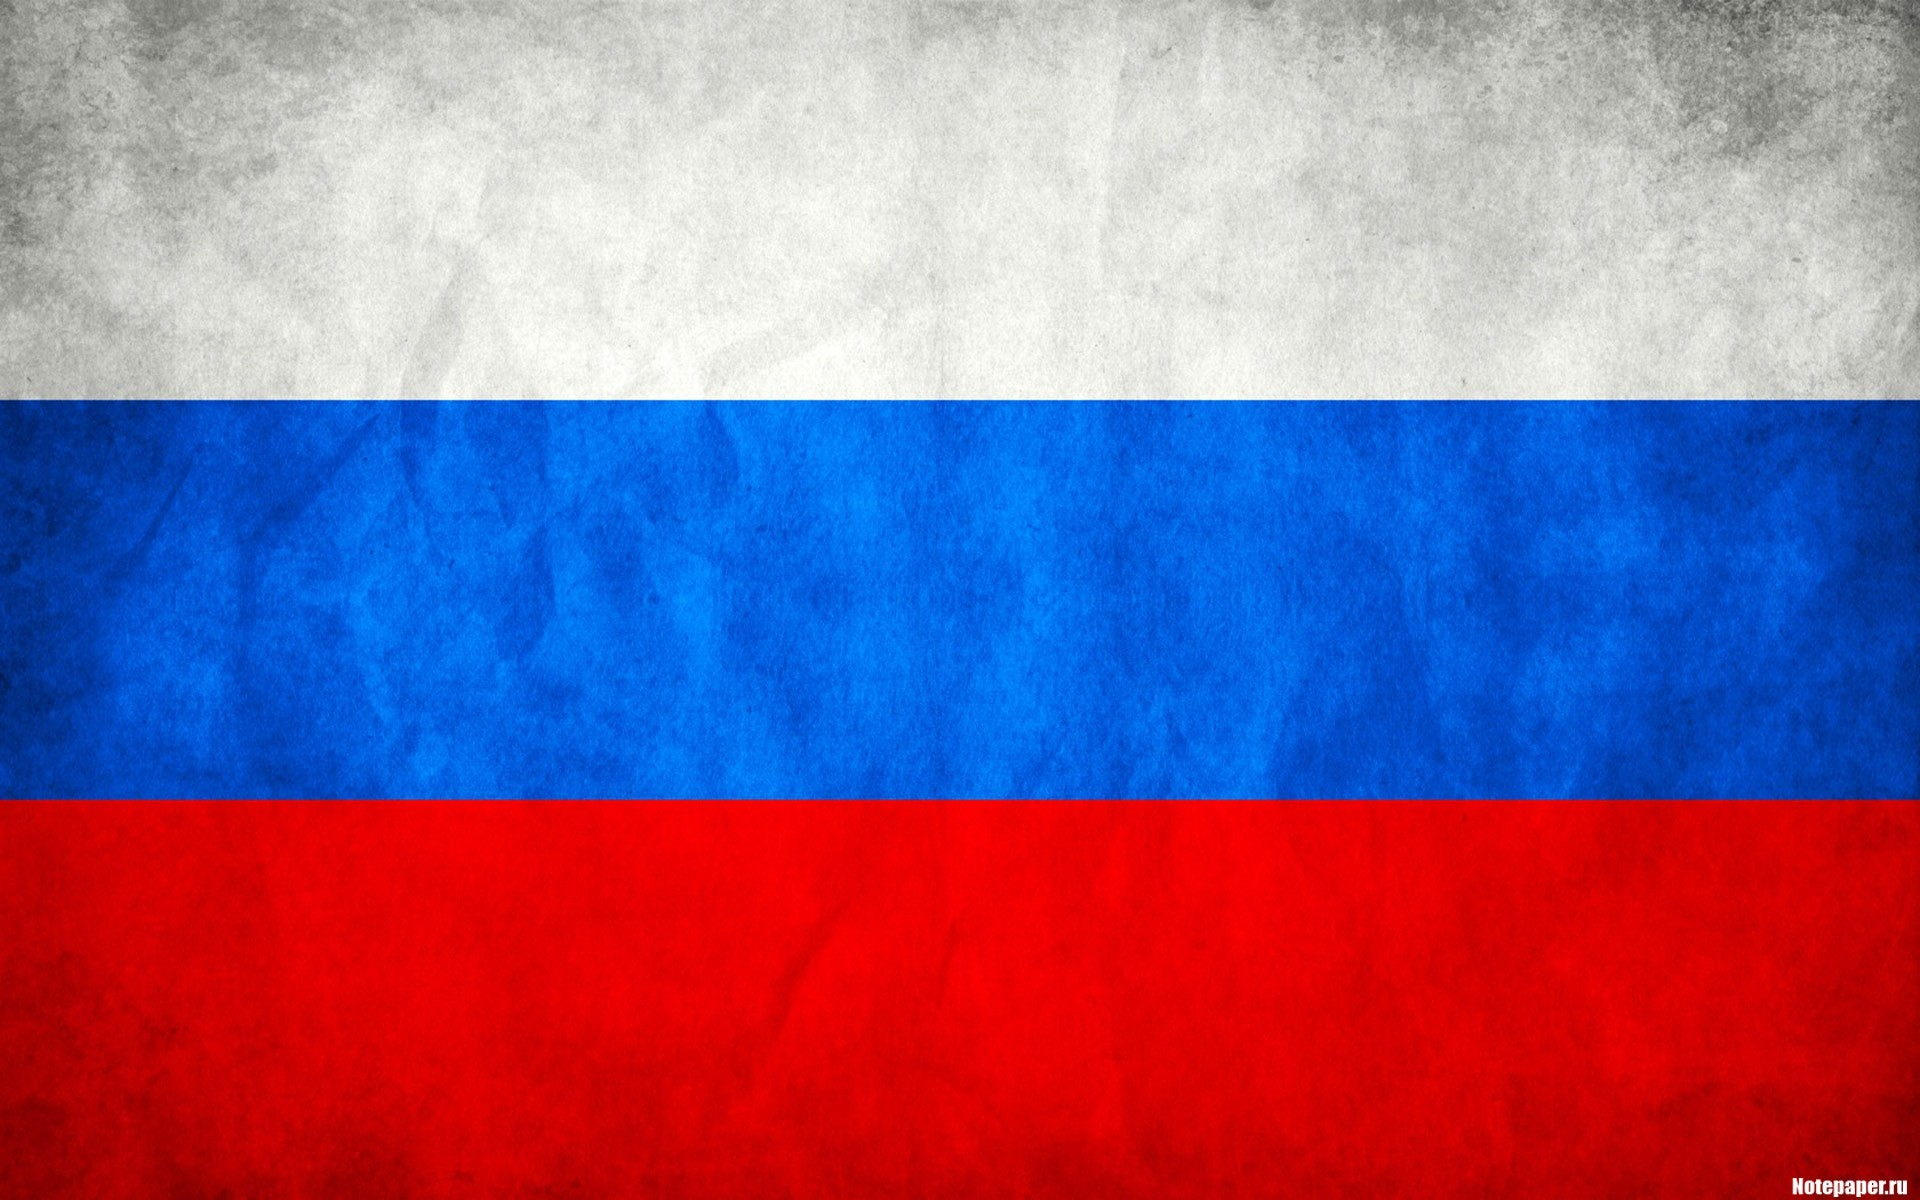 blue red white Russia flags Russian Federation Russian flags wallpaper    Red White And Blue Iphone Wallpaper